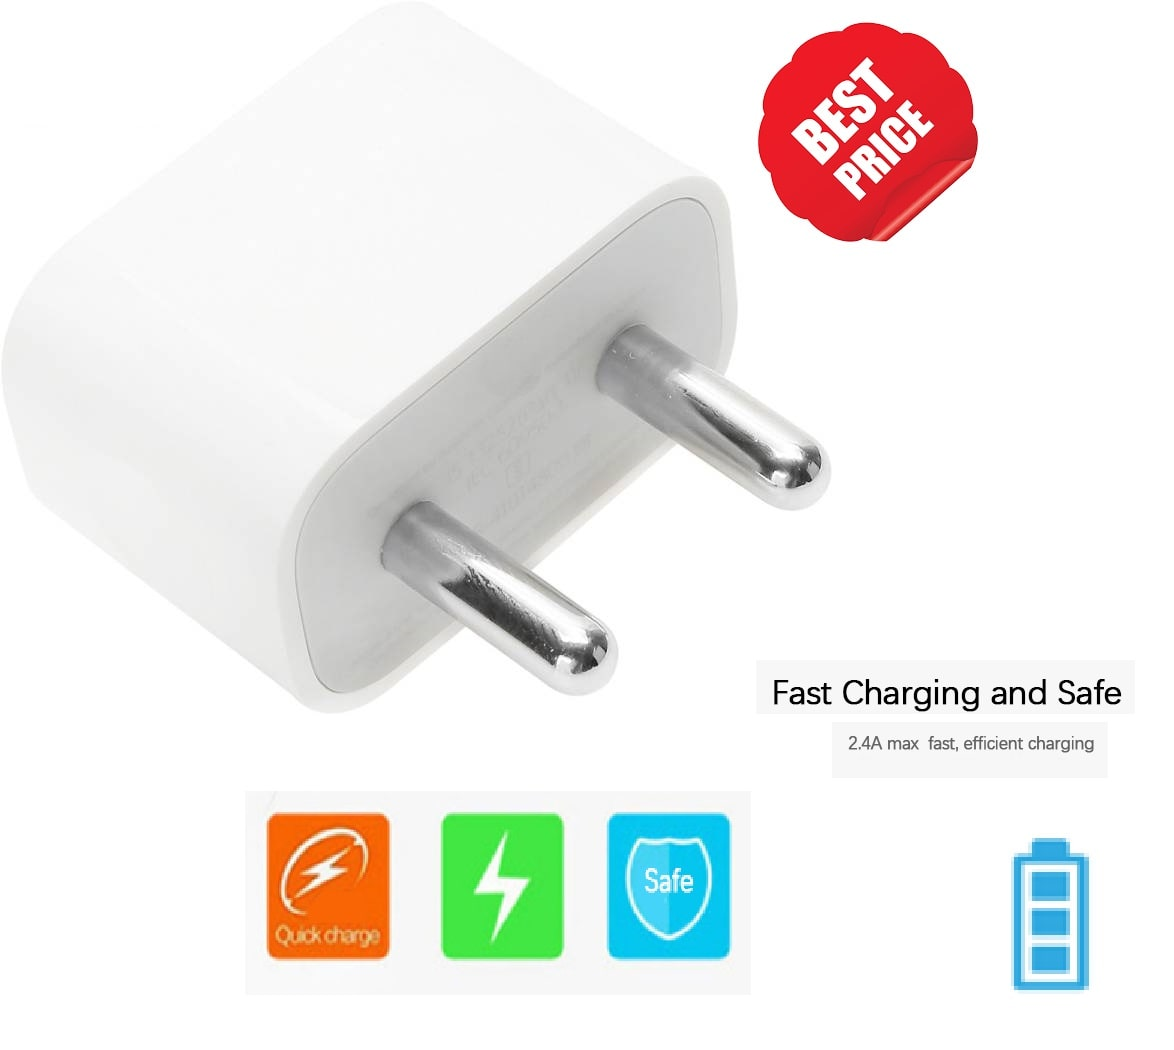 IKART Wall Charger For iPhone 5/5/5c/6/6s/6 Plus/6s Plus/7/7 Plus  White